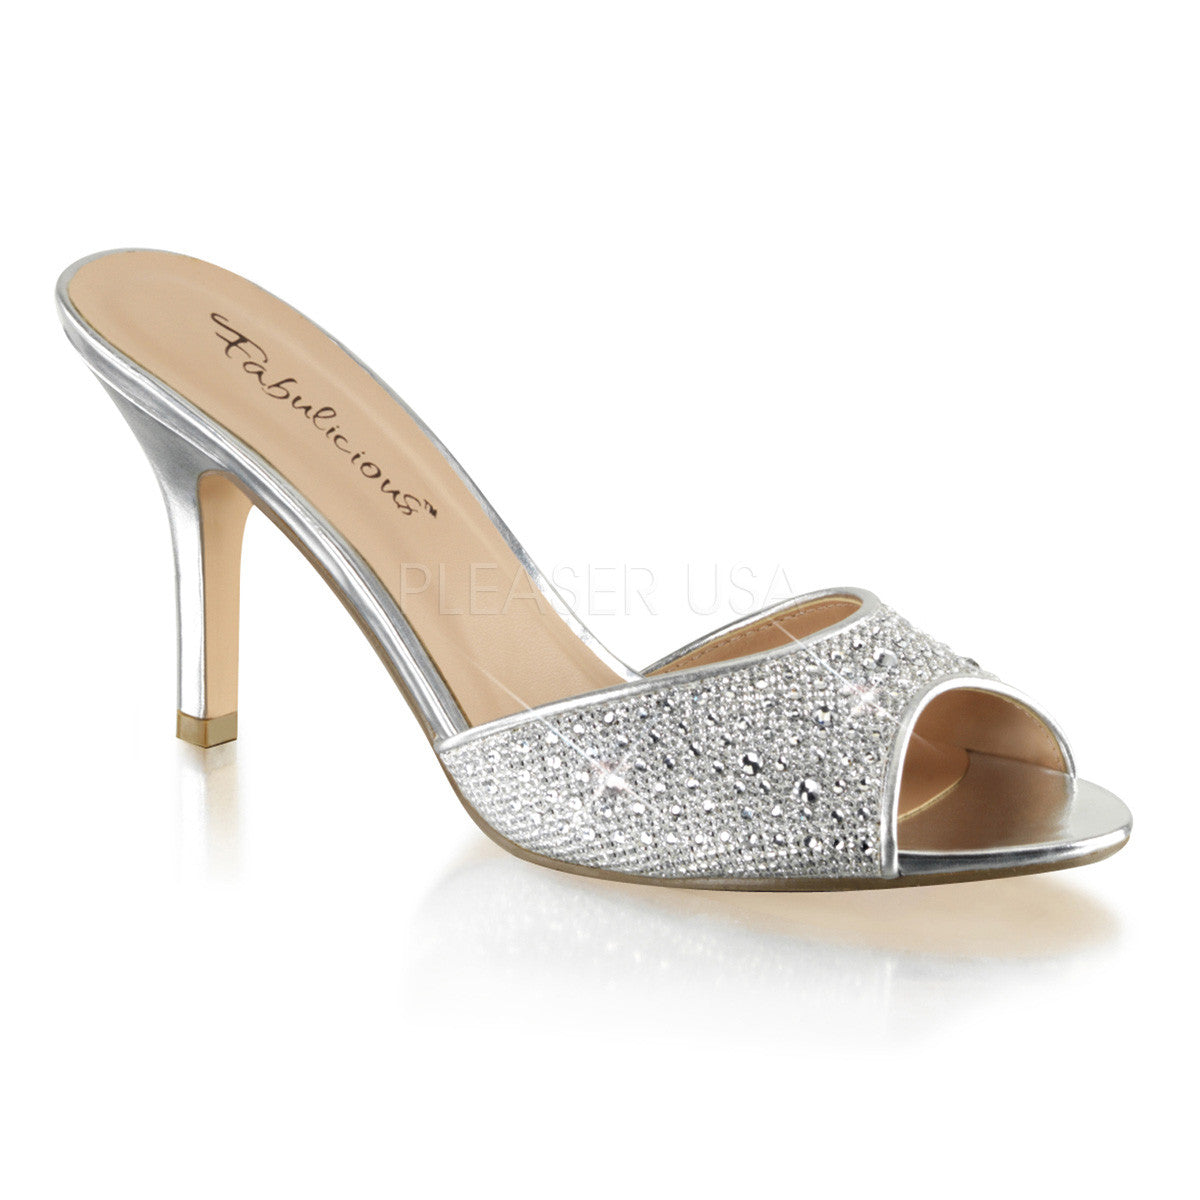 Fabulicious LUCY-01 Silver Glitter Mesh Fabric Sildes - Shoecup.com